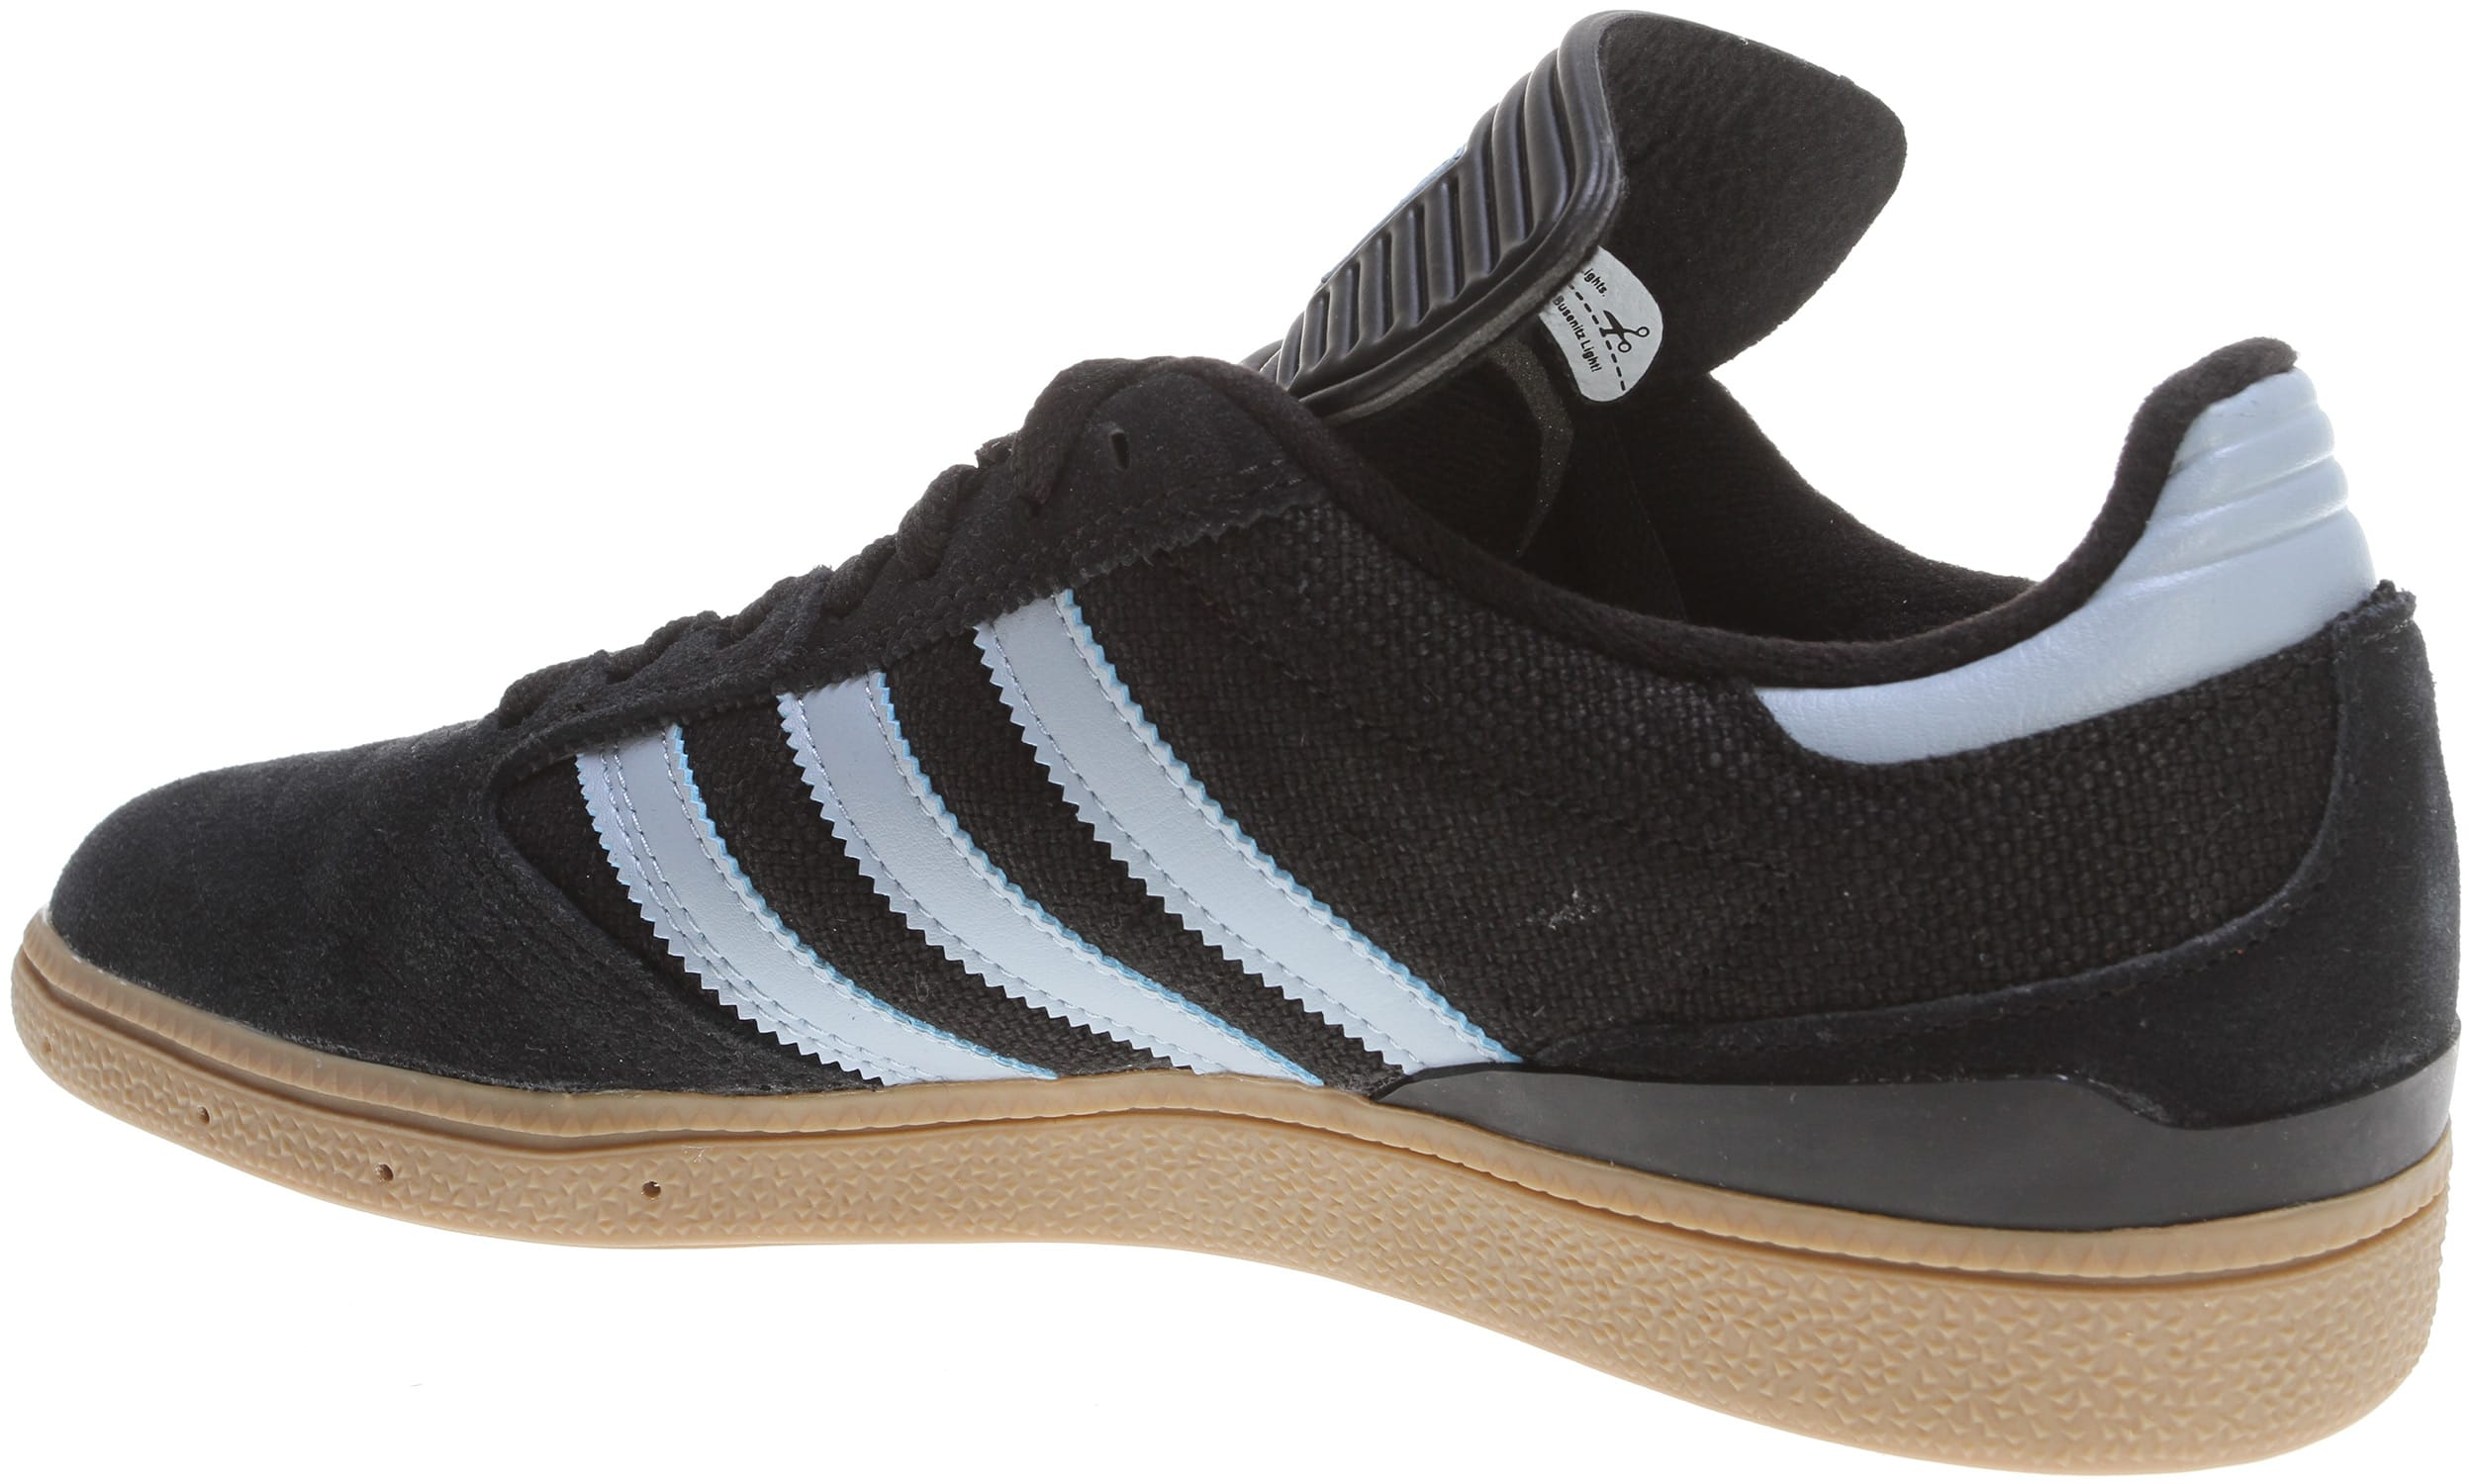 Adidas Busenitz Pro Shoe On Sale